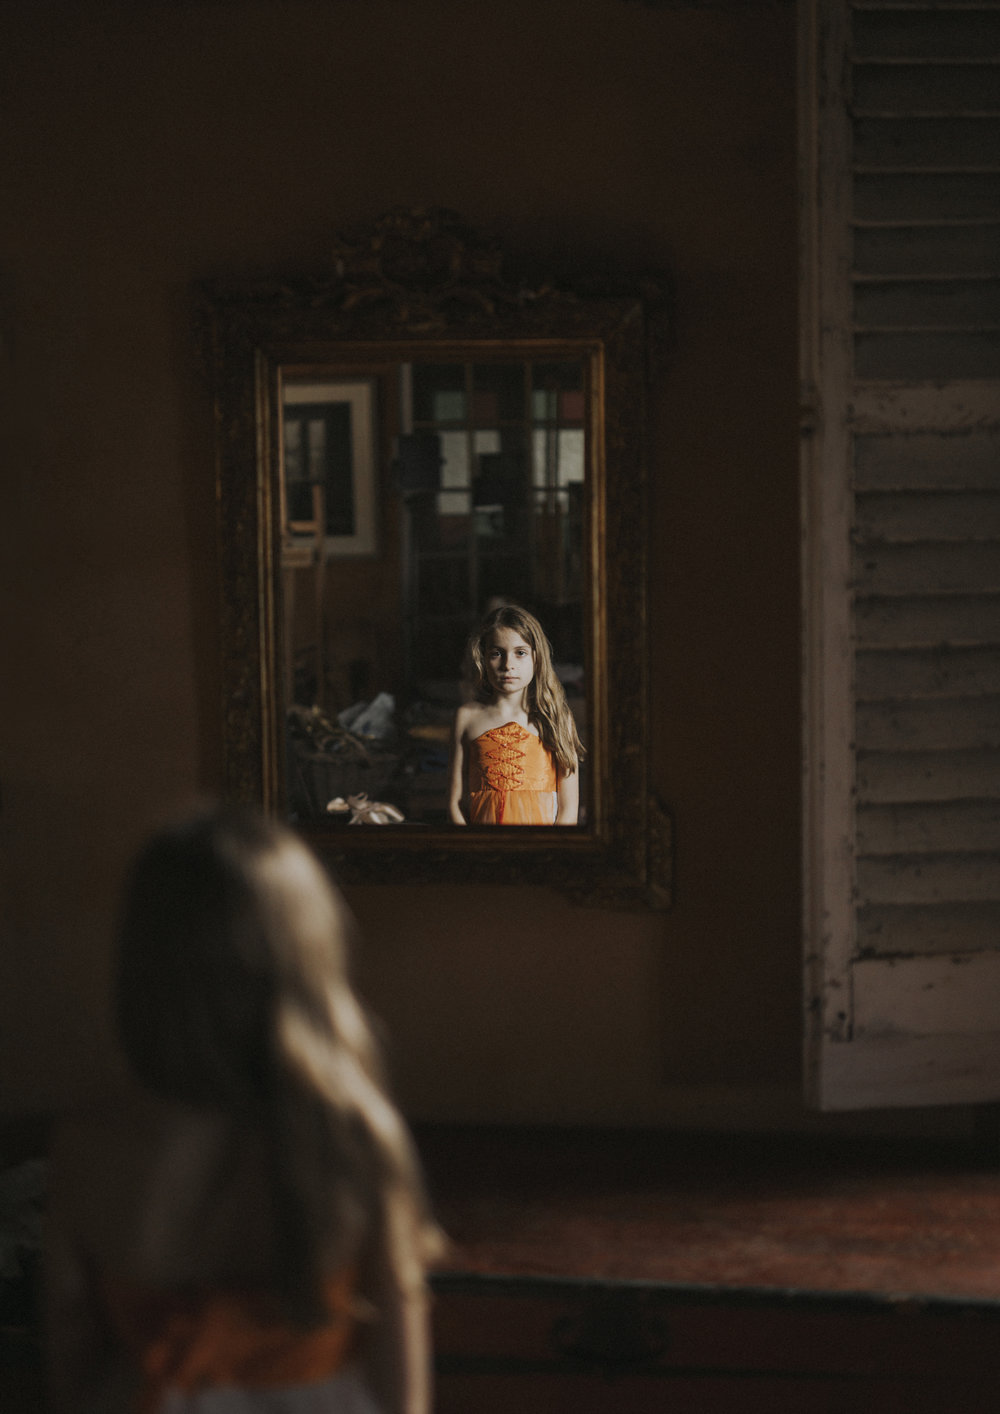 Reflection of Tween girl in mirror